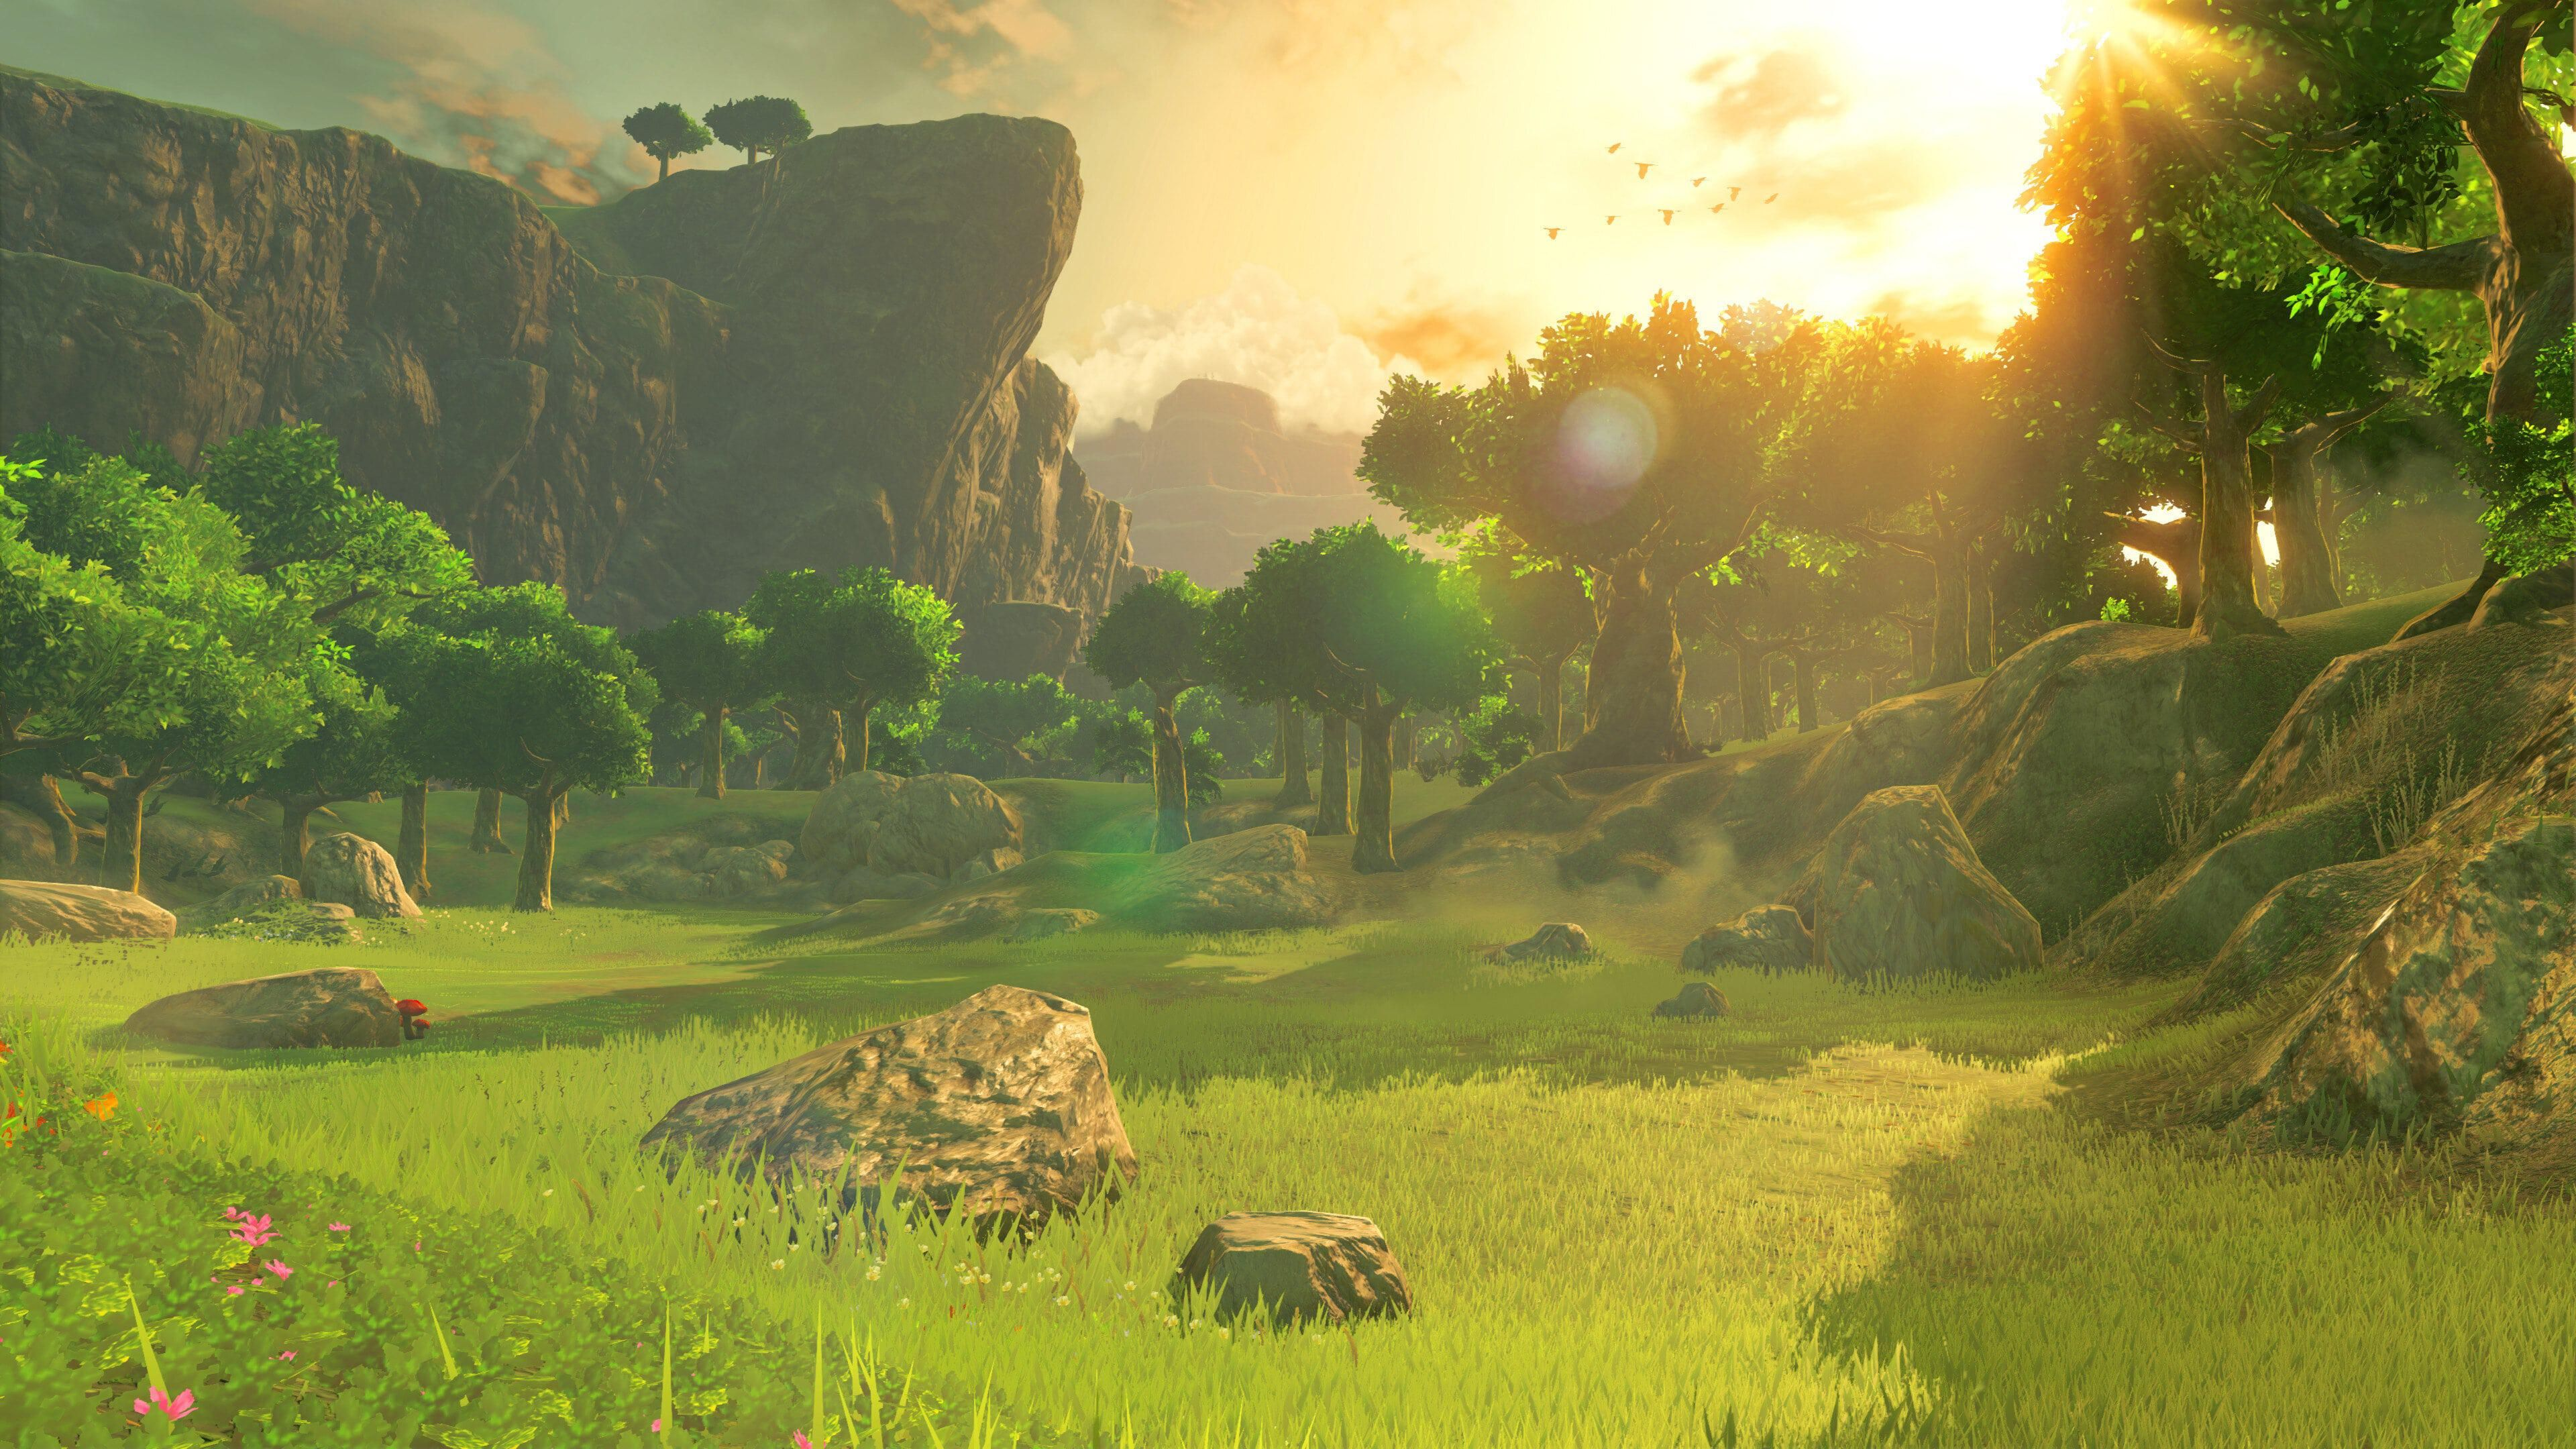 Refreshing Greenery 3840x2160 In 2020 Anime Scenery Legend Of Zelda Breath Of The Wild